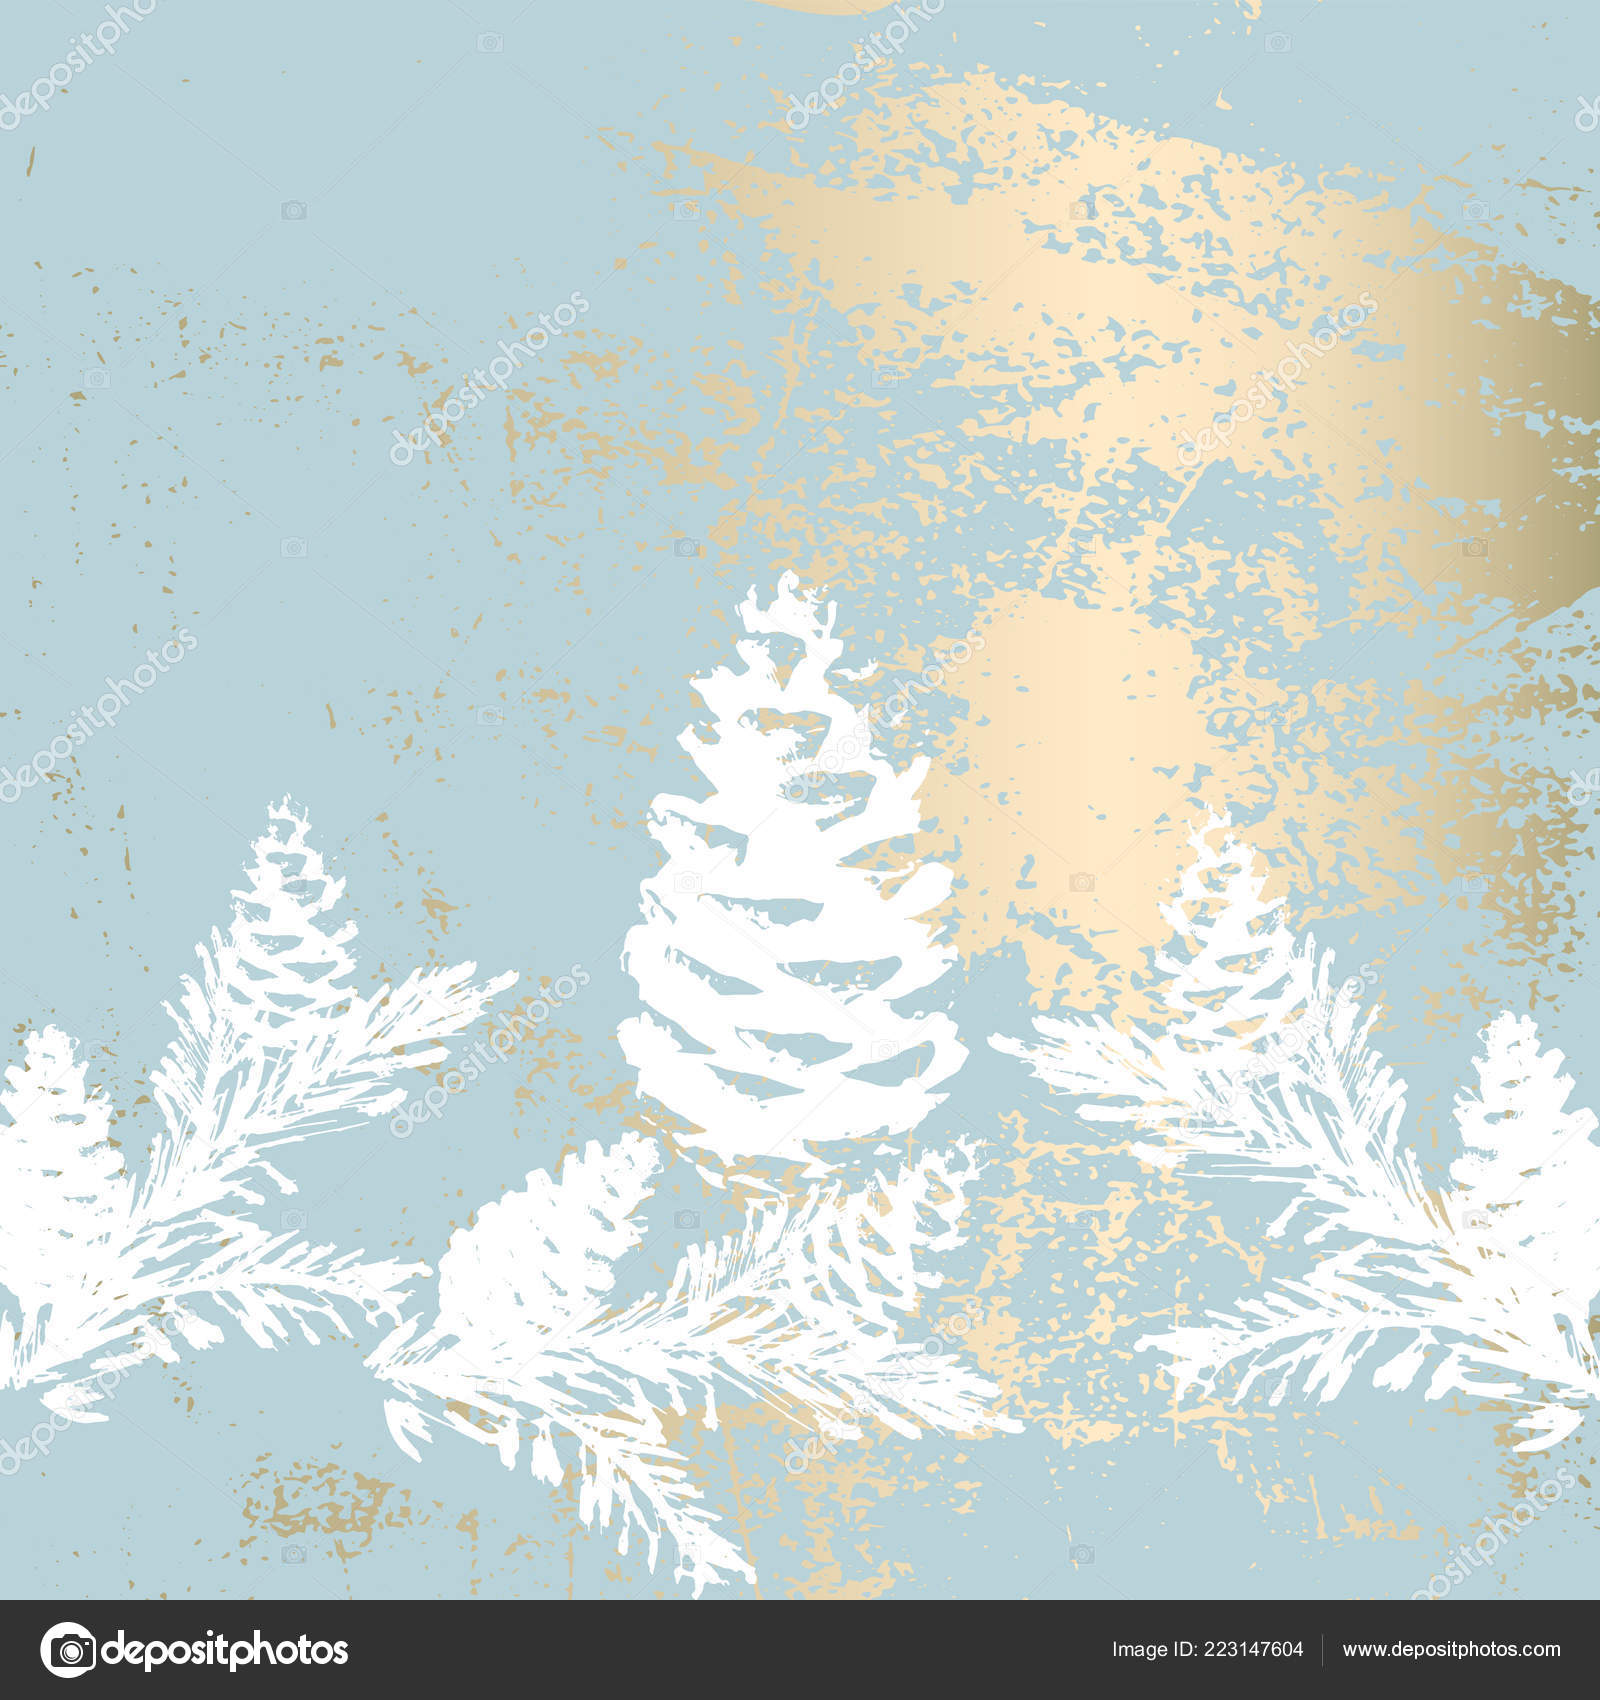 Trendy Chic Pastel Colored Background Gold Foil Shapes